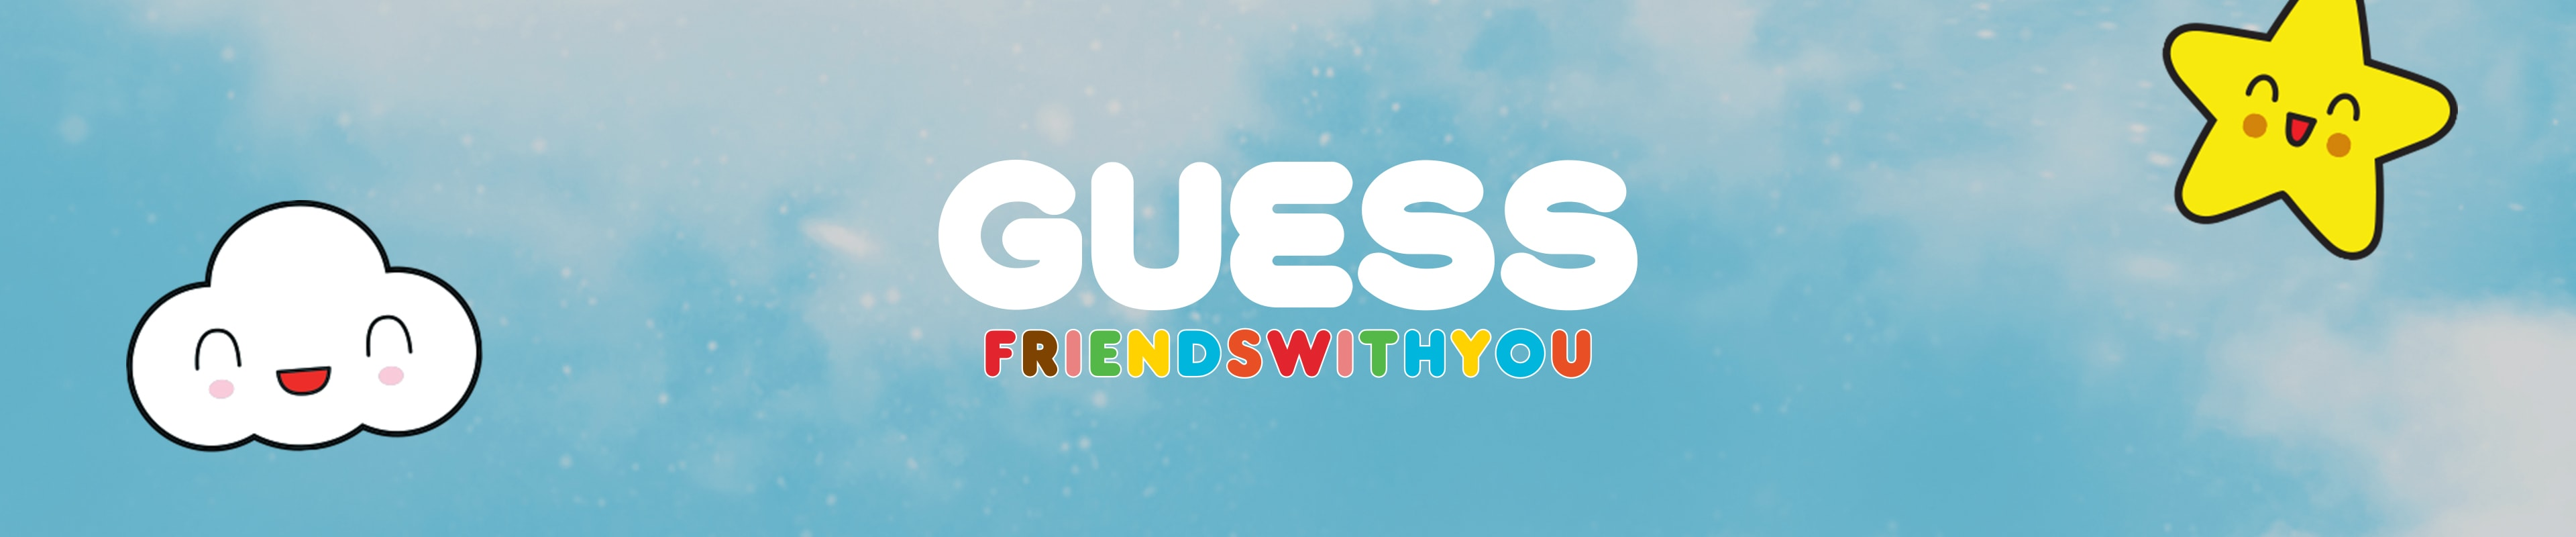 GUESS x FriendsWithYou